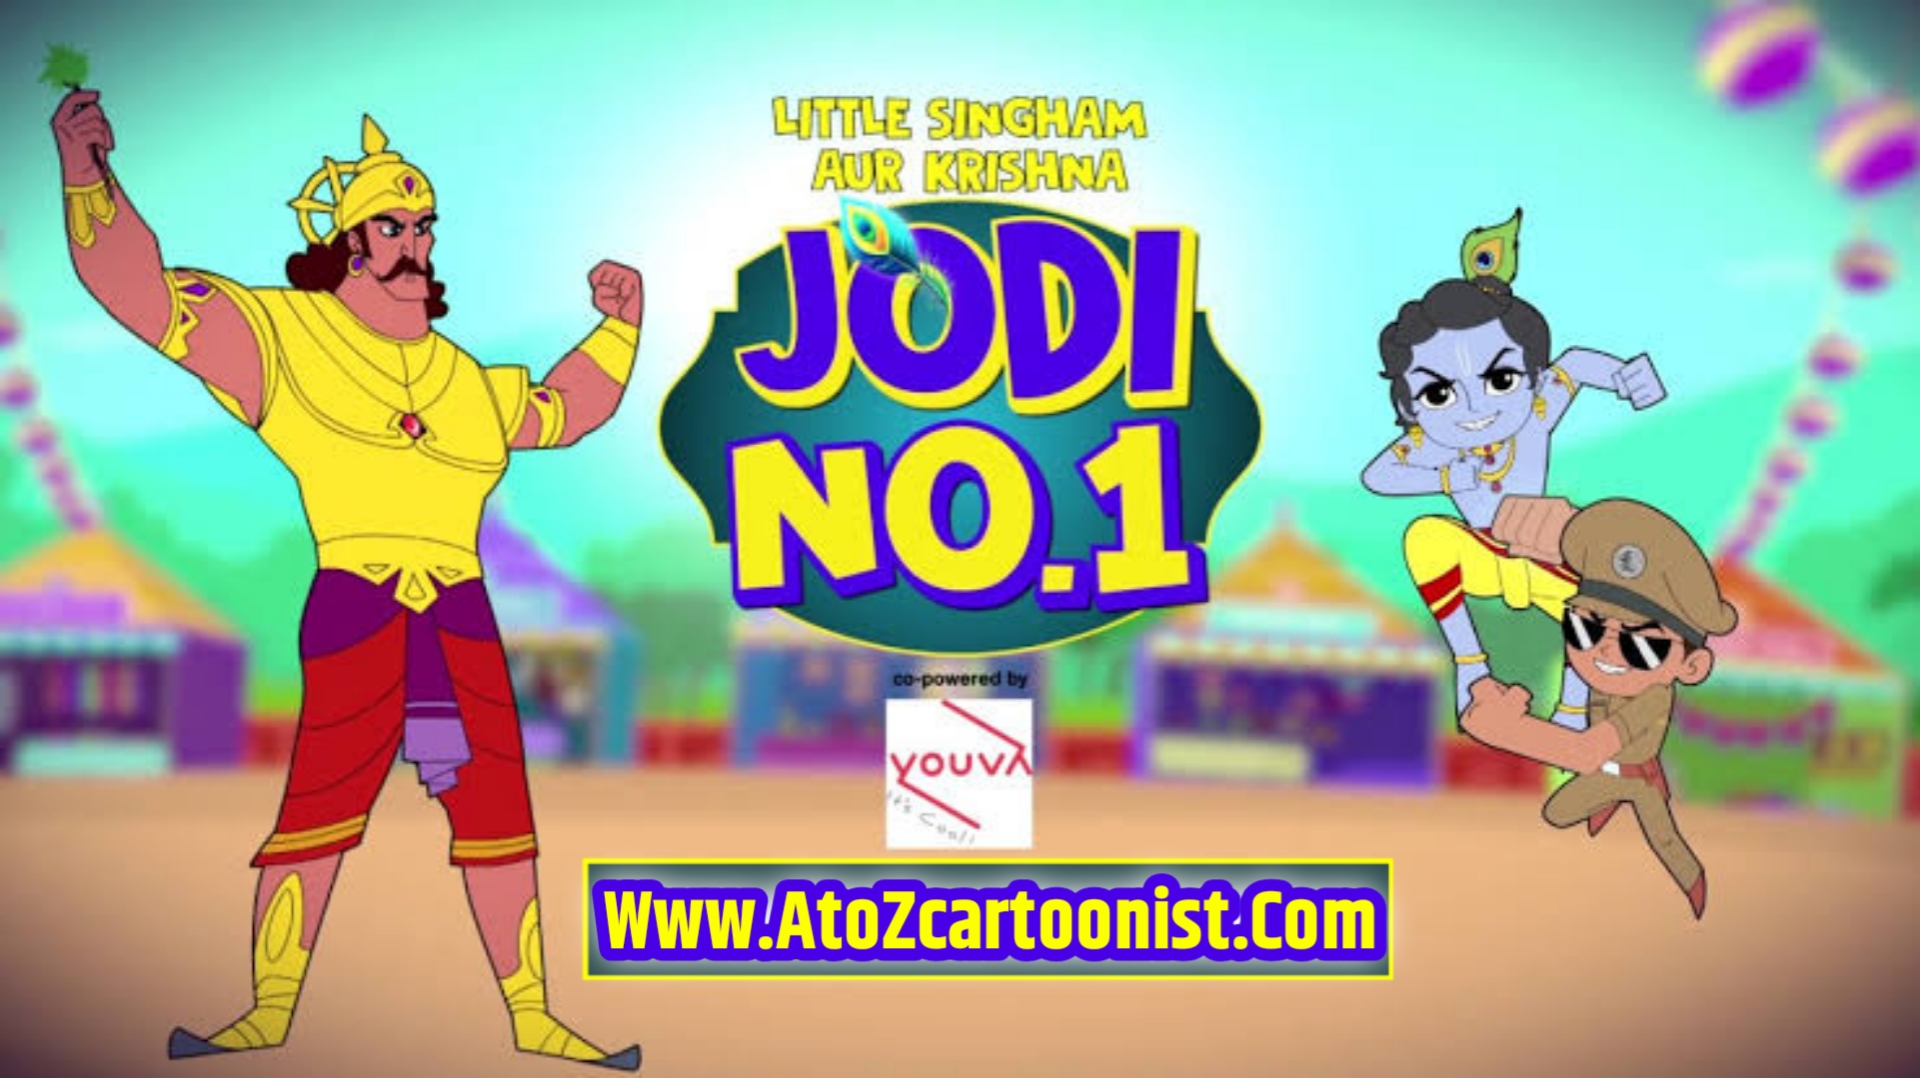 LITTLE SINGHAM AUR KRISHNA : JODI NO.1 FULL MOVIE IN HINDI DOWNLOAD (480P HQ)